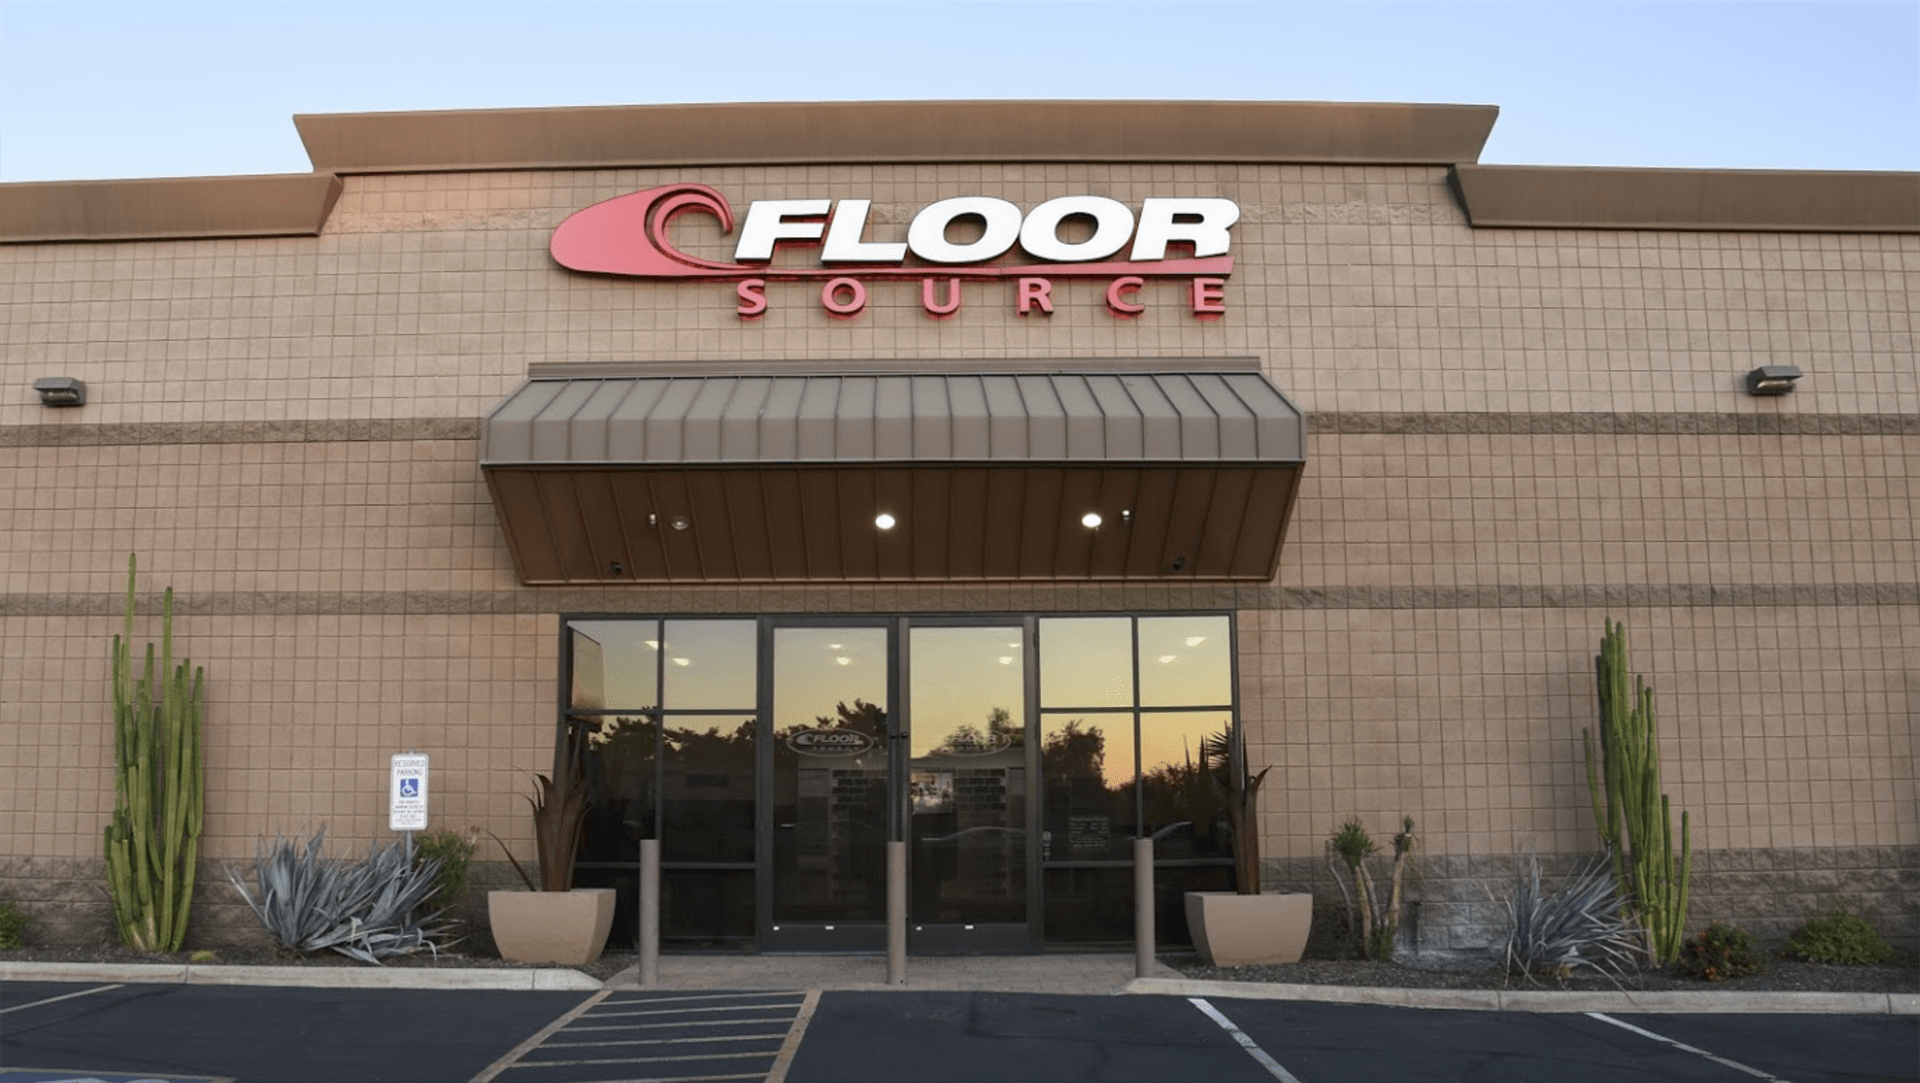 The Floor Source storefront in Phoenix, AZ, stop by today!